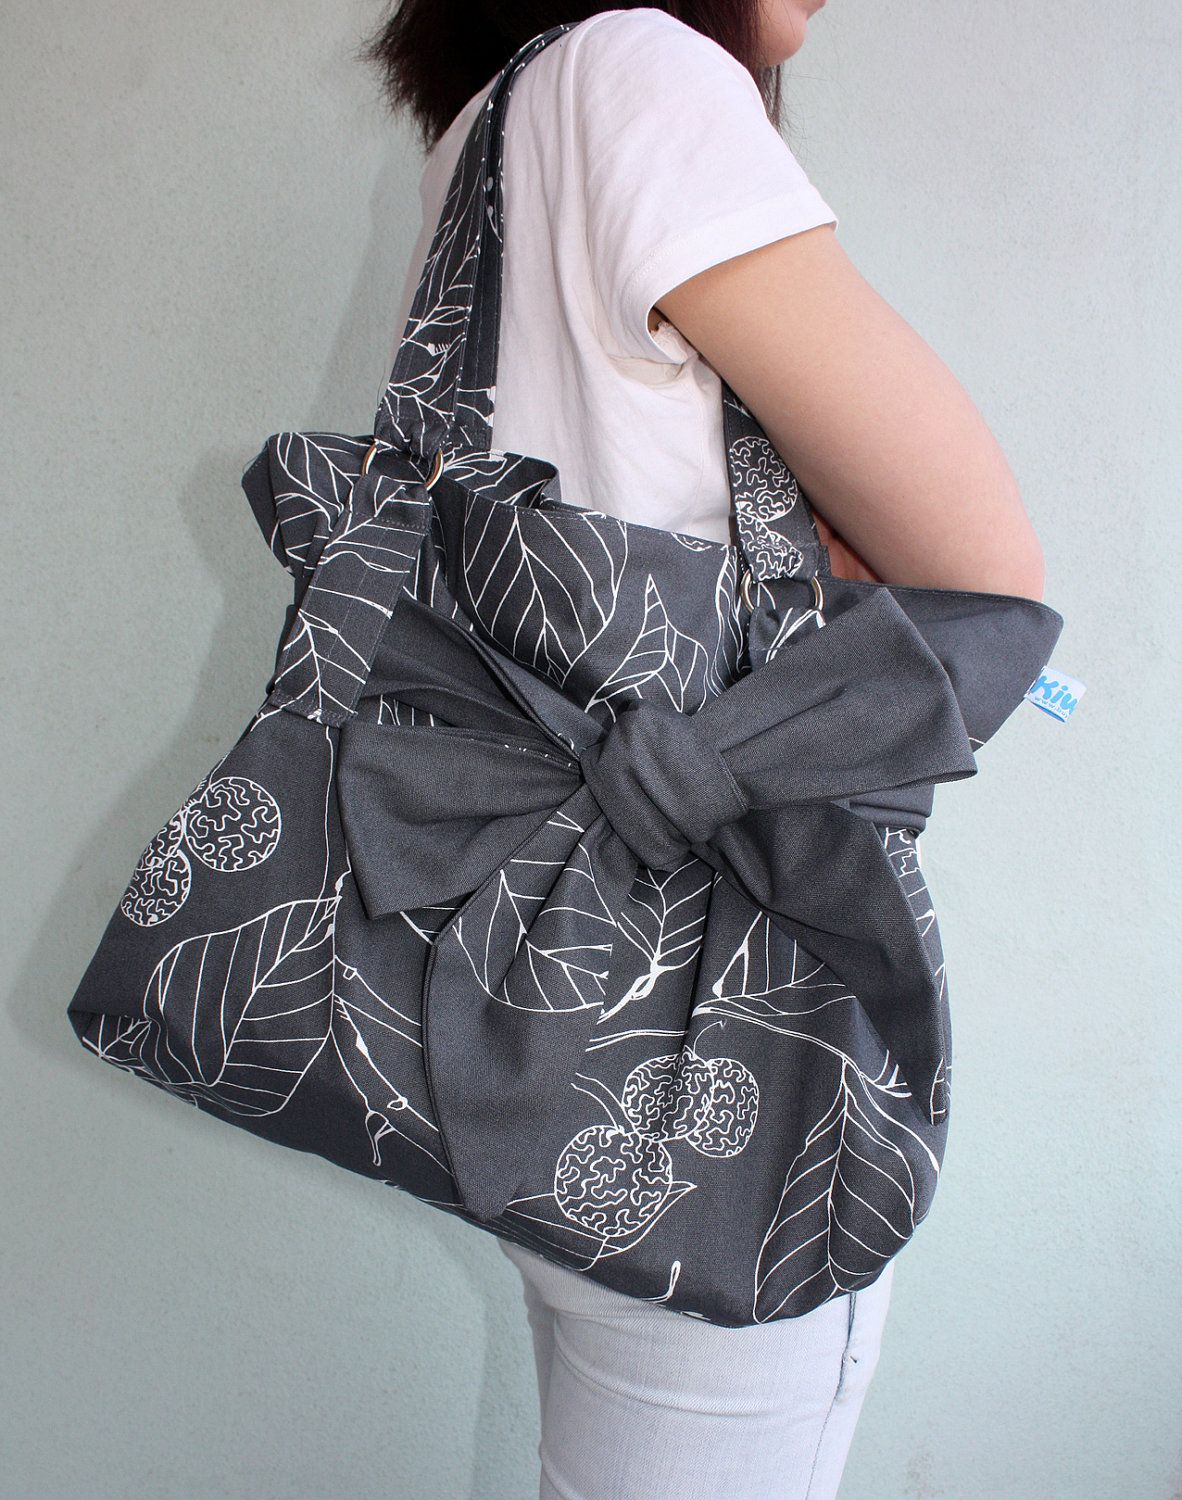 fa79e41493f33c So cute! I love the big bow! | Things I Think I Have To Buy | Bags ...